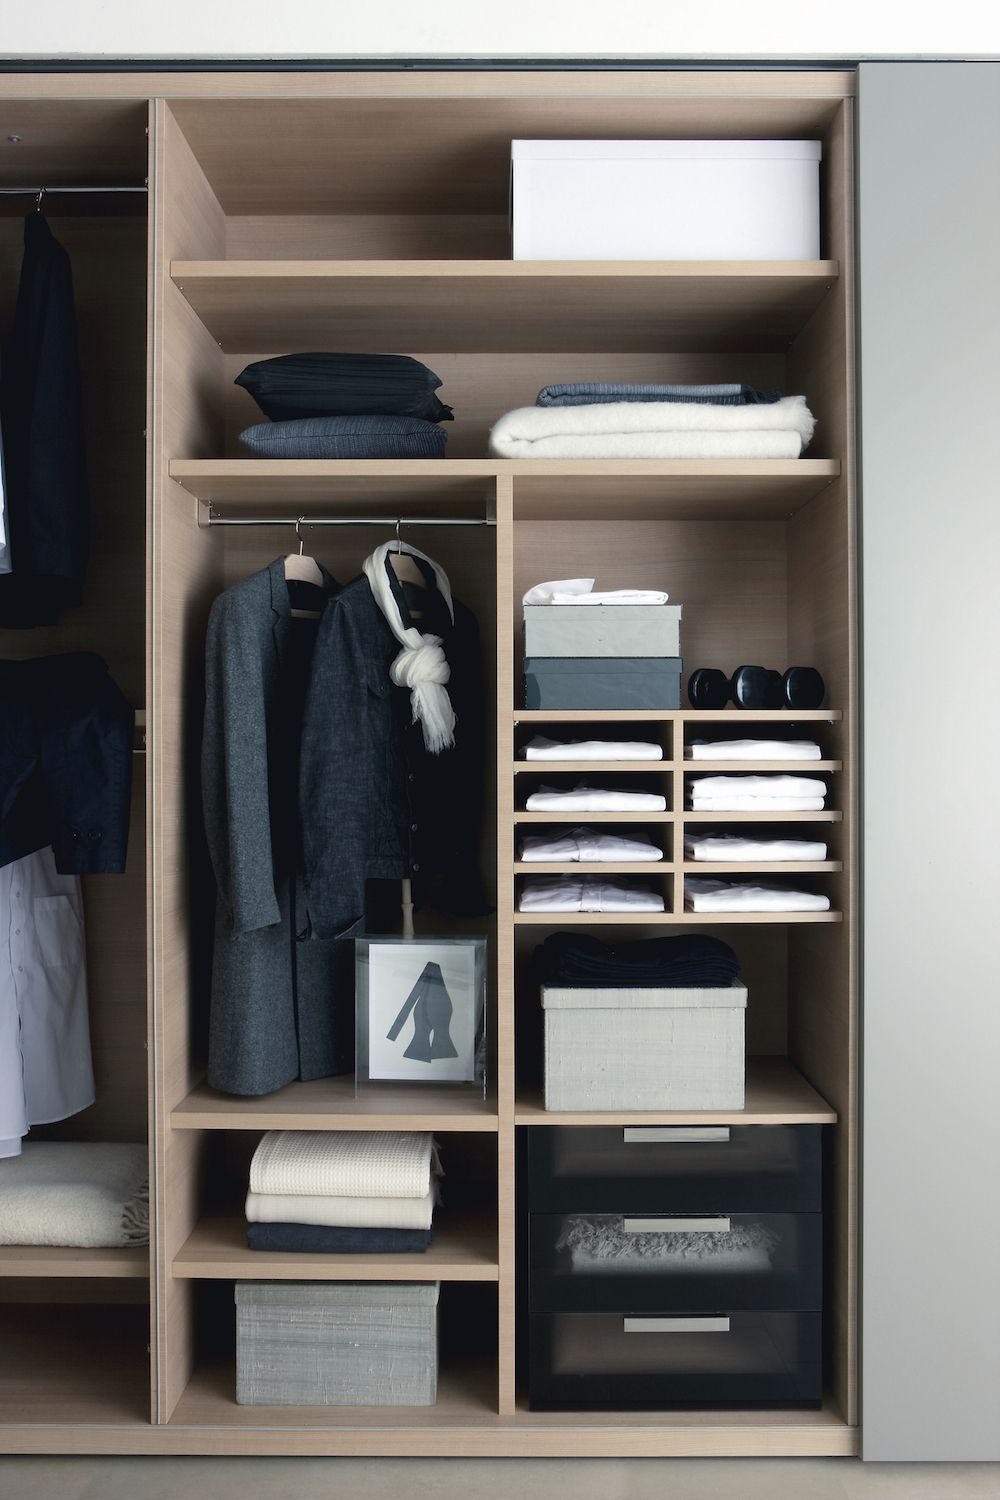 8 Quick And Easy Closet Upgrades Apartmentguide Com Closet Design Simple Closet Closet Designs